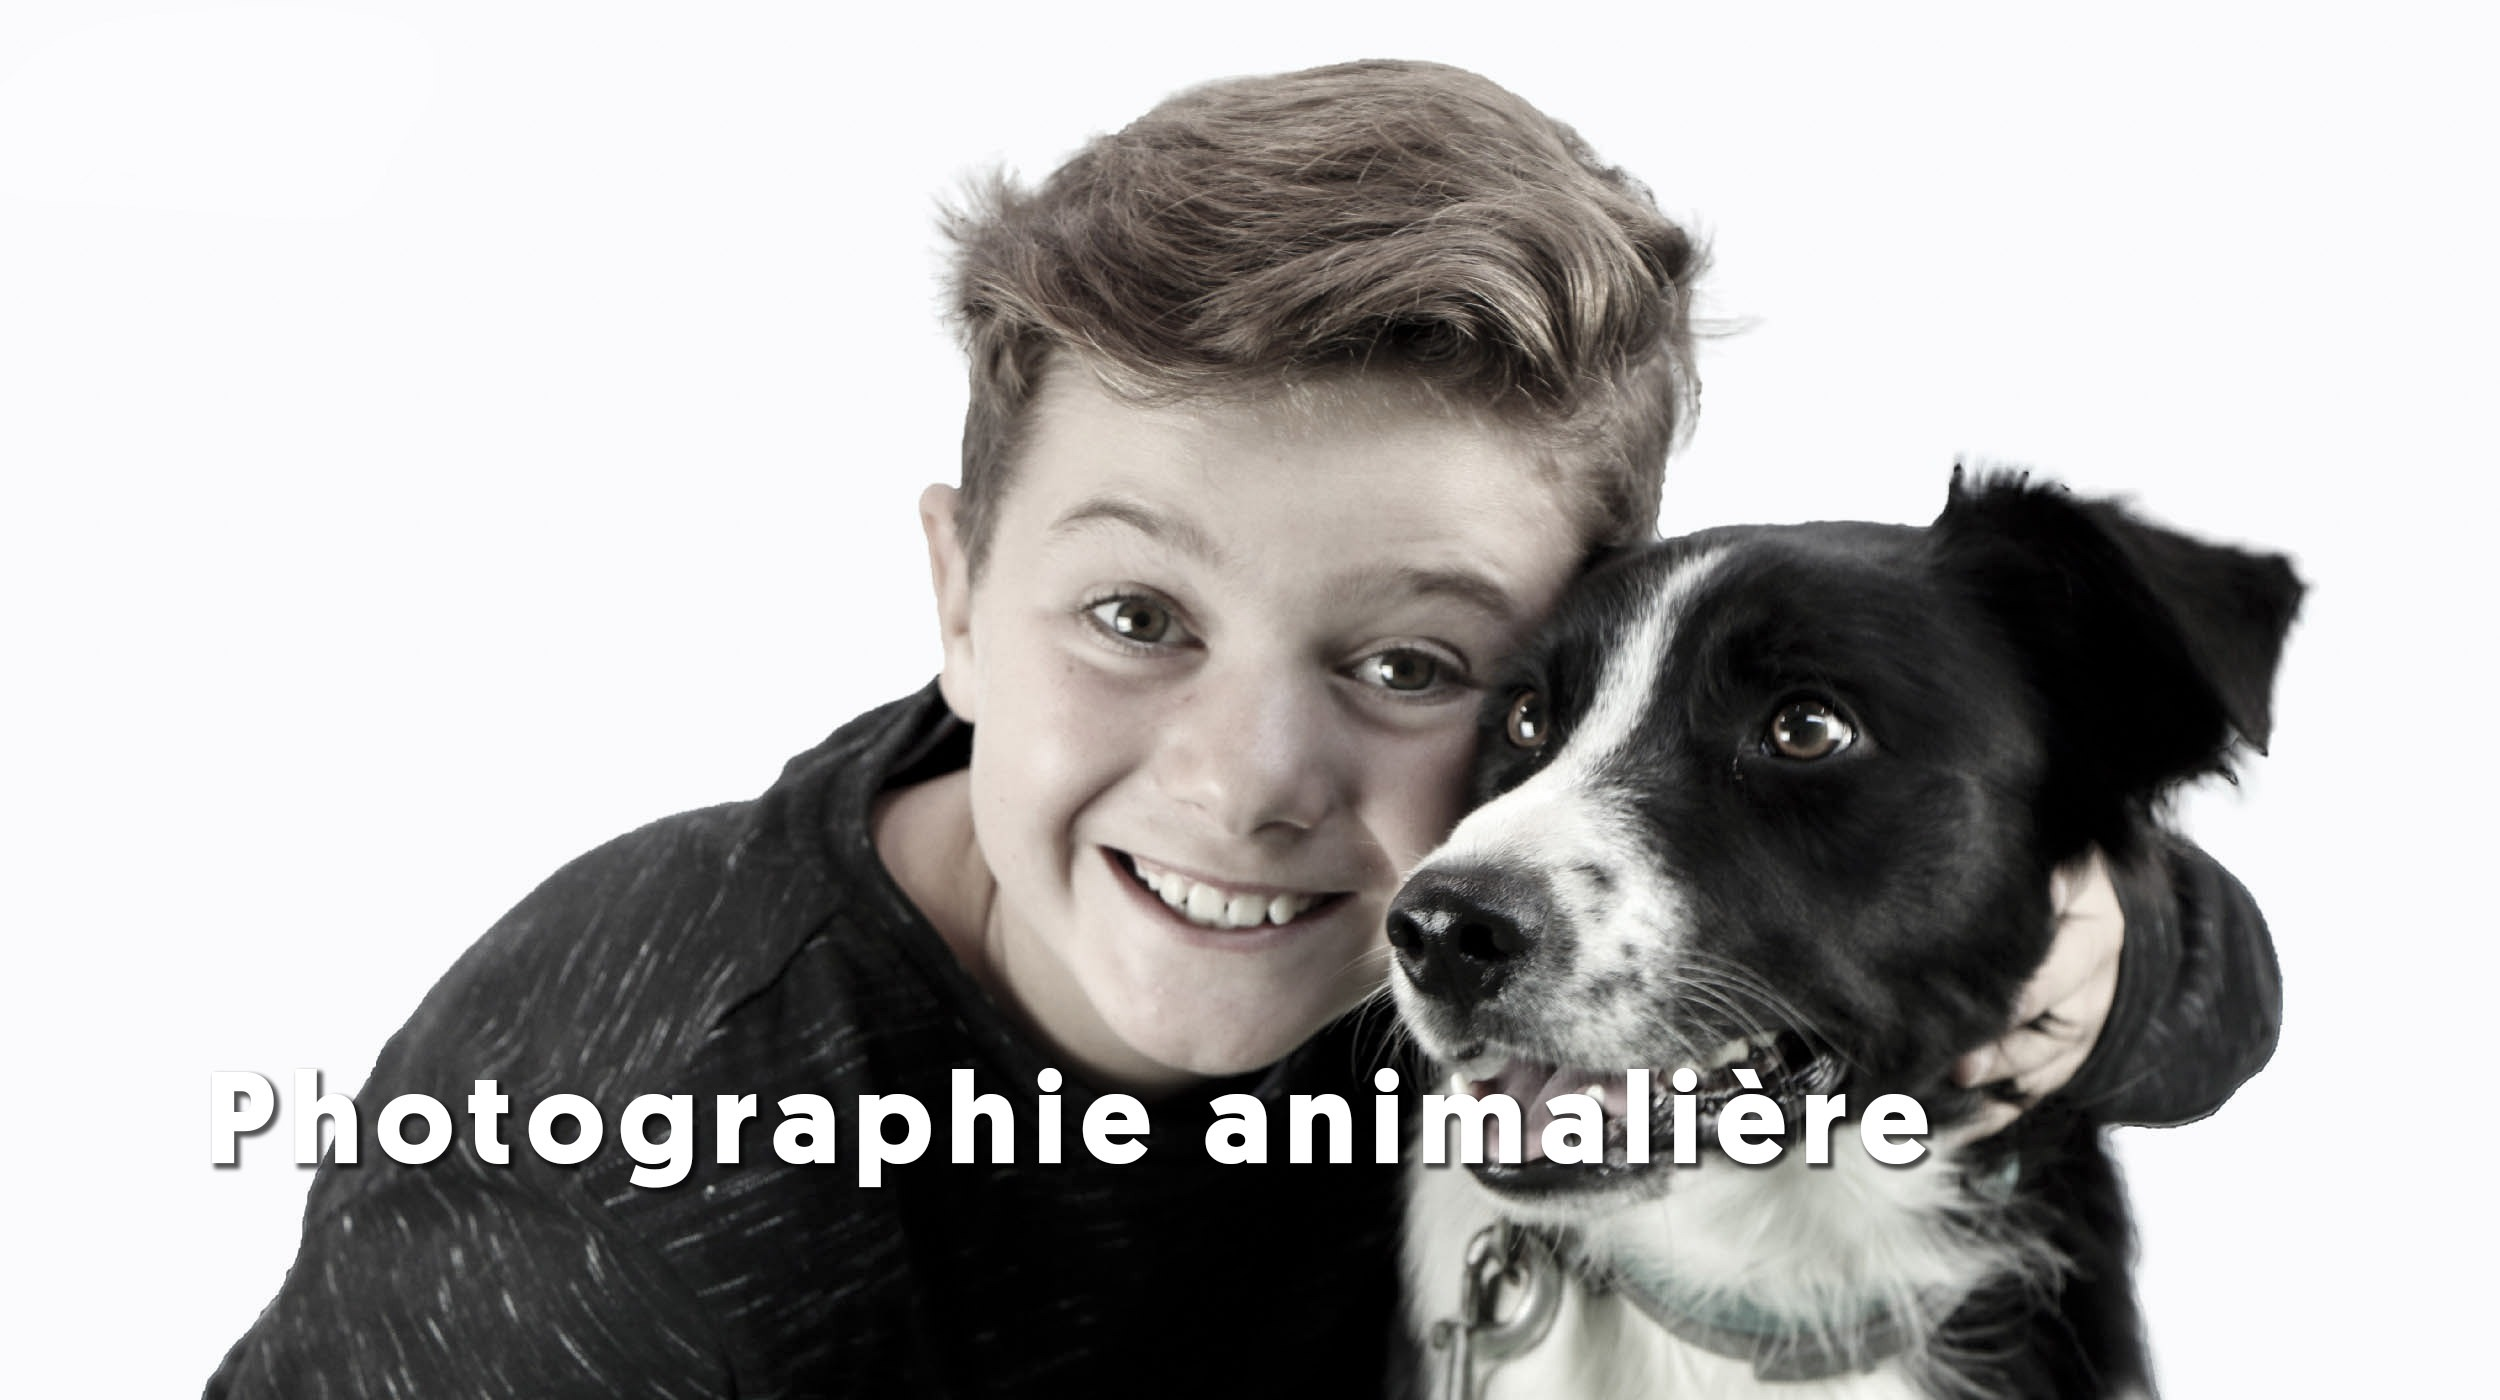 photo-animaliere-chien-animal-de-compagnie